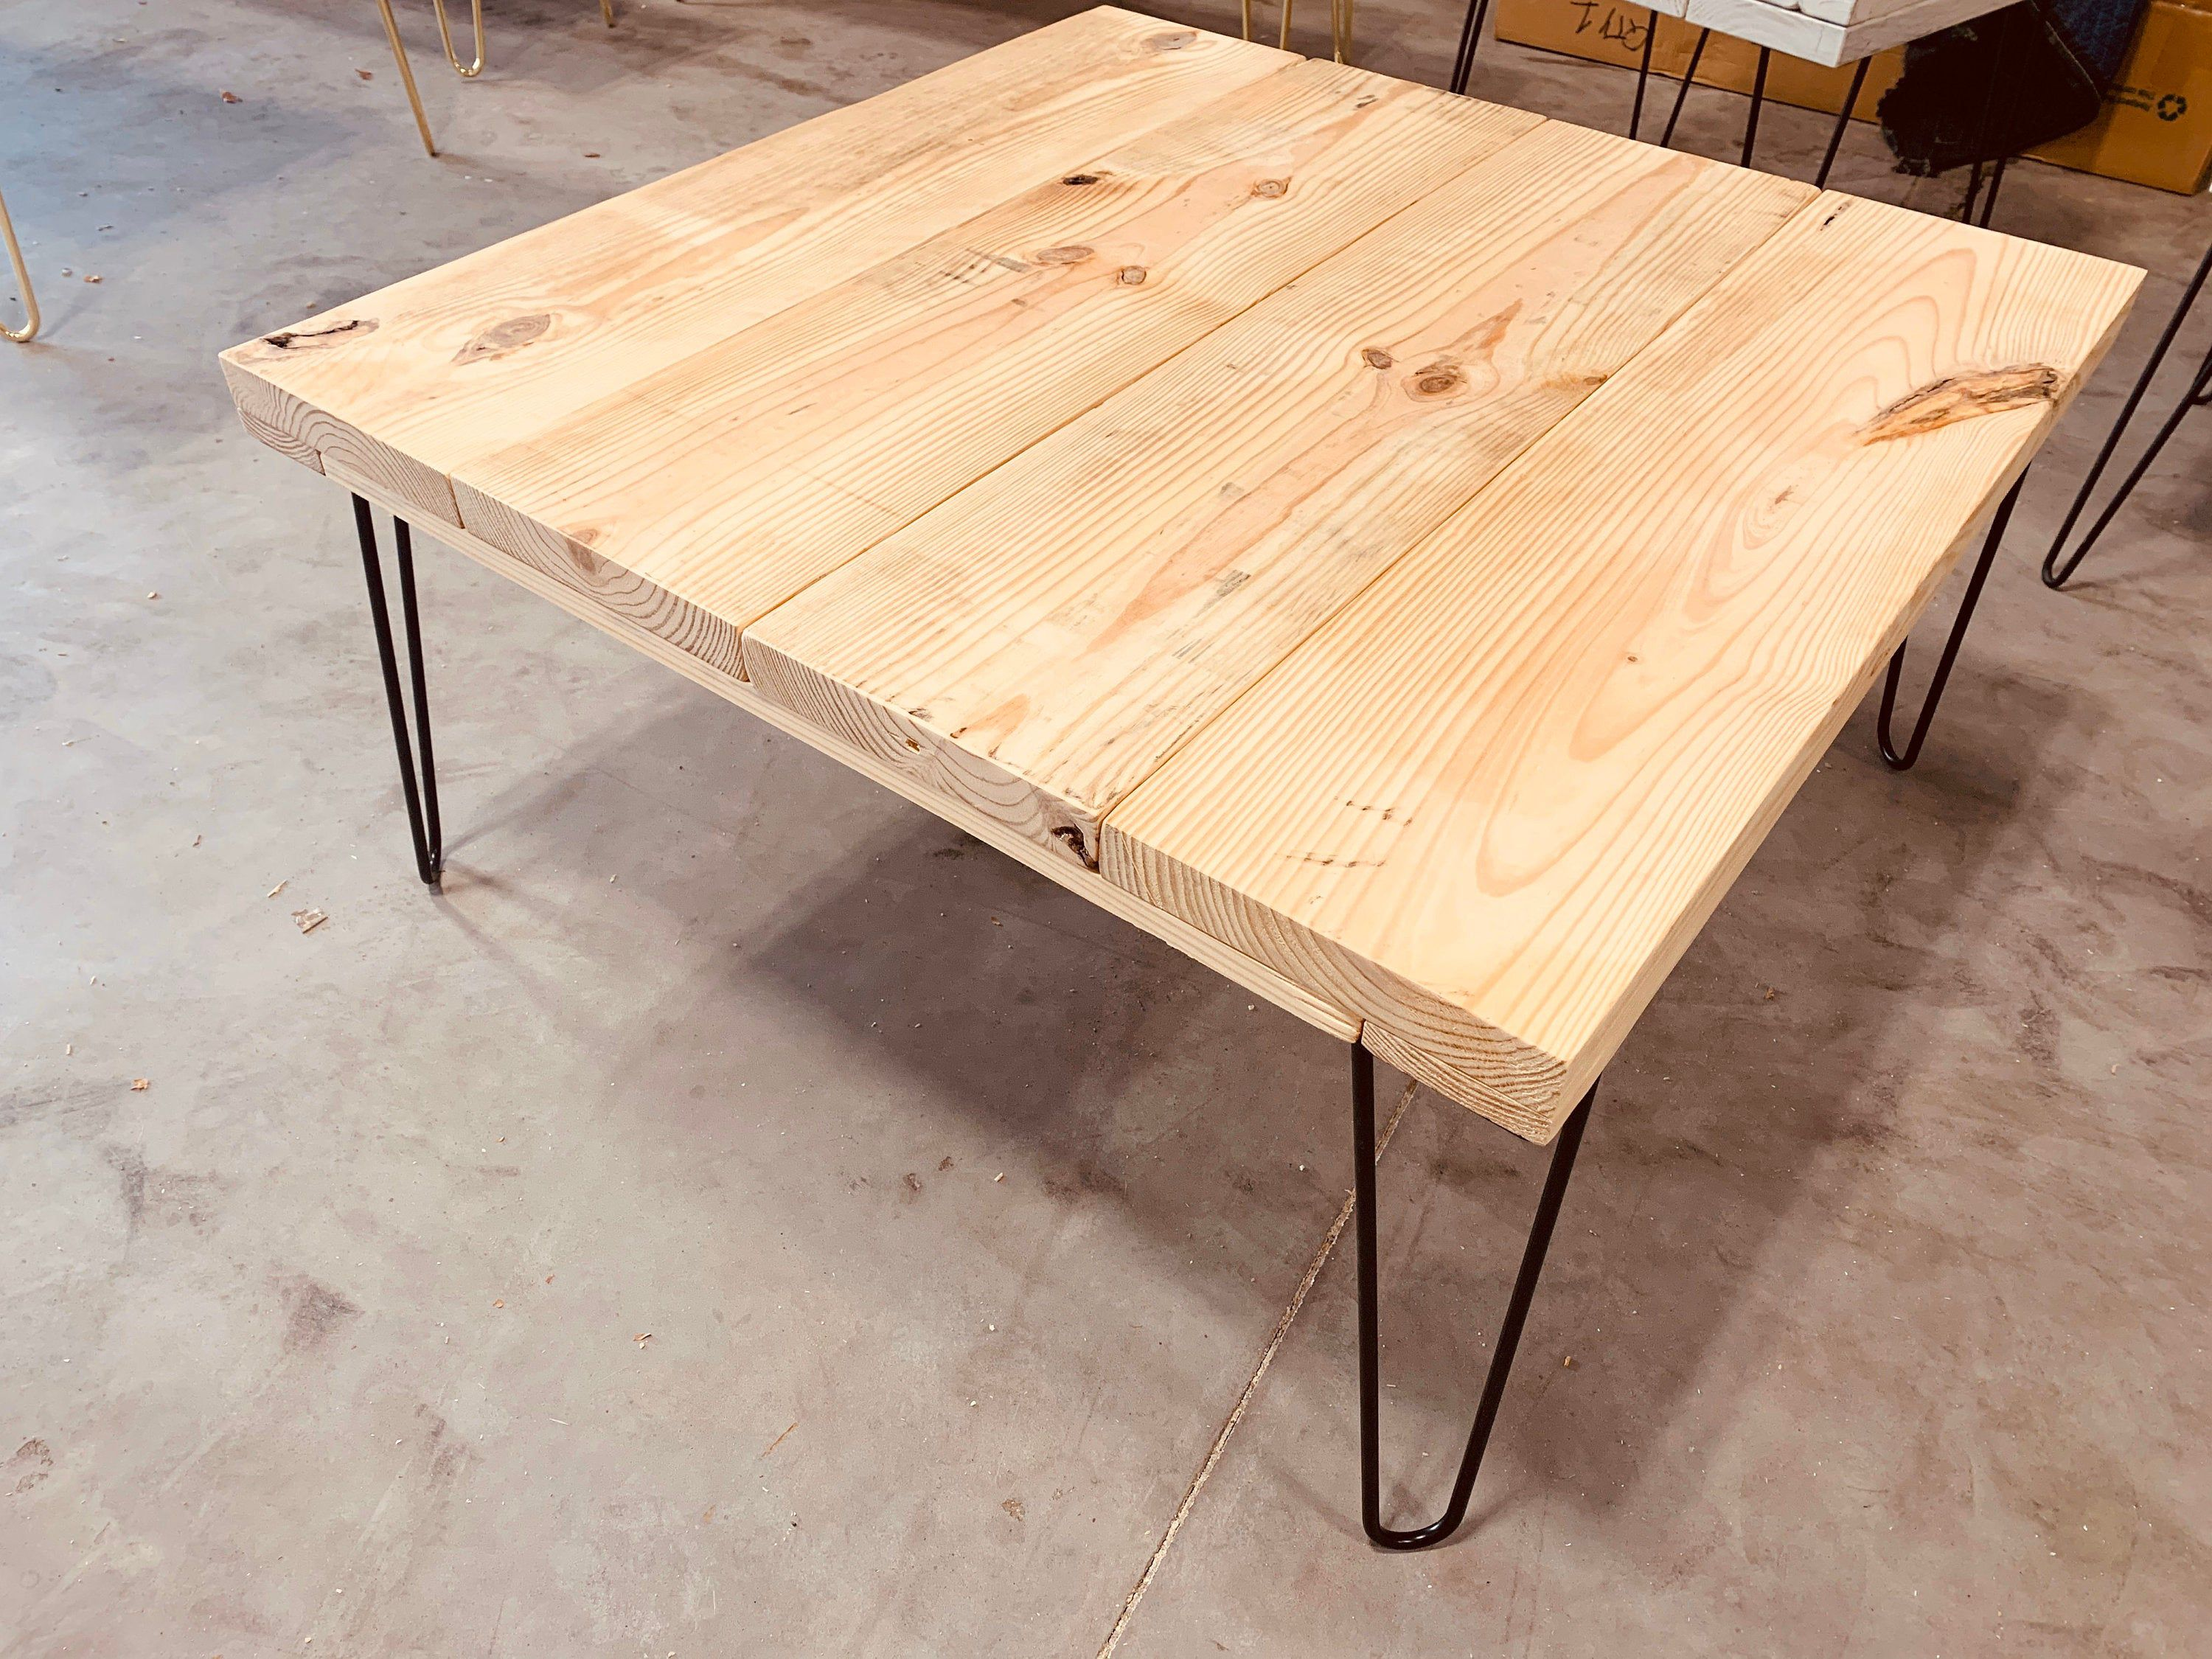 Industrial Large Square Coffee Table With Hairpin Legs Unfinished Diy Top Ready To Stain Or Paint Raw Wood Do It Yourself Living Room Large Square Coffee Table Coffee Table Coffee Table